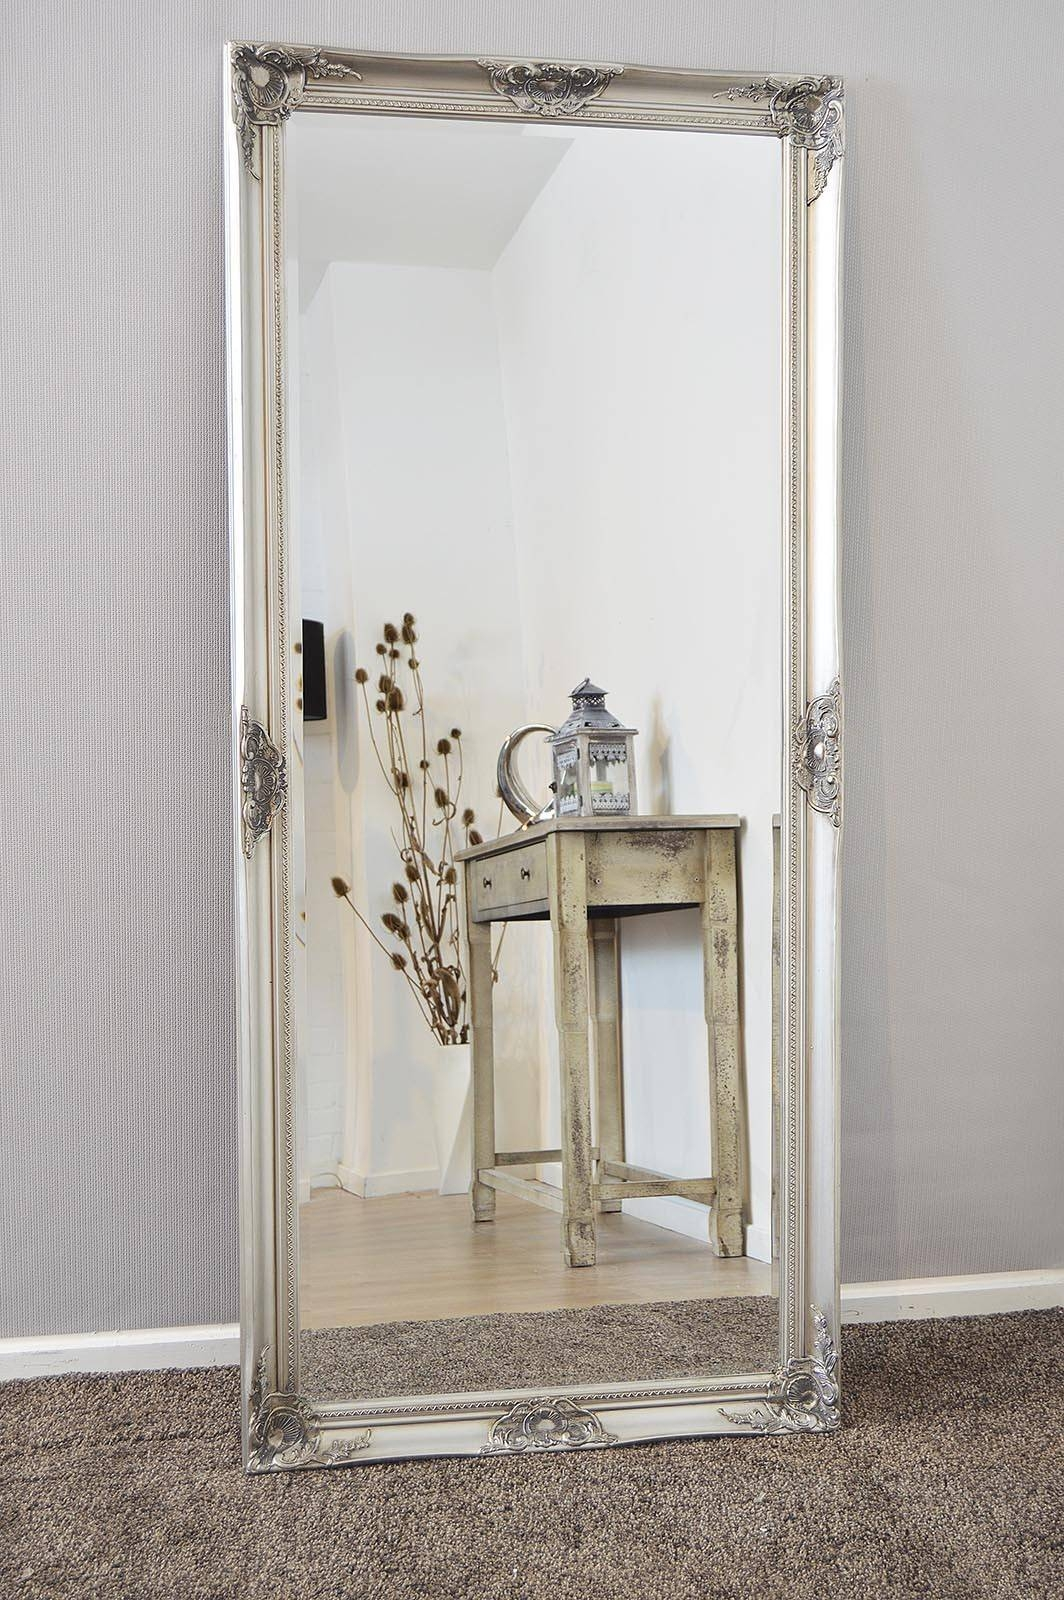 Shabby Chic Wall Mirror 88 Stunning Decor With Large Antique intended for Large Silver Vintage Mirrors (Image 11 of 15)